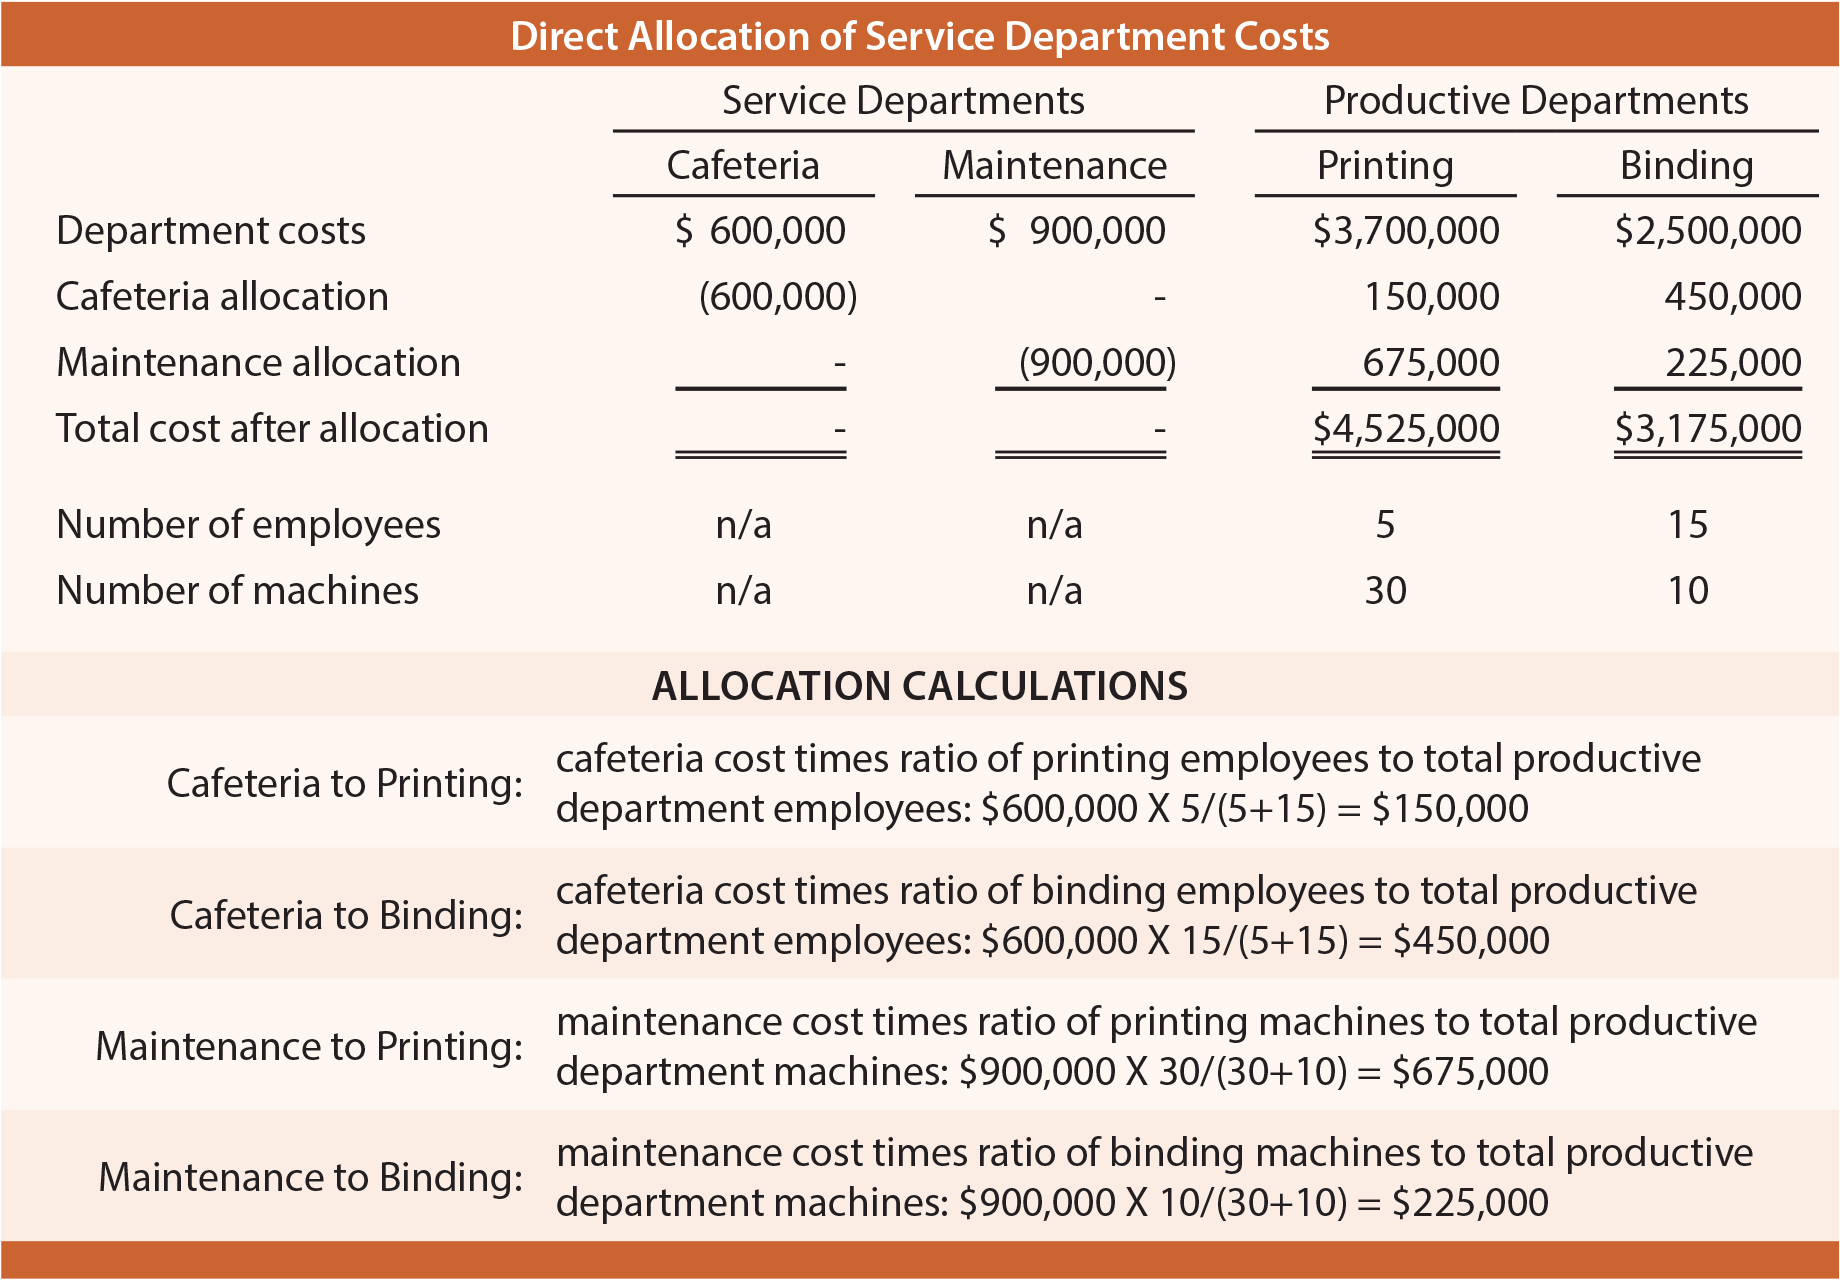 Direct Allocation of Service Department Costs